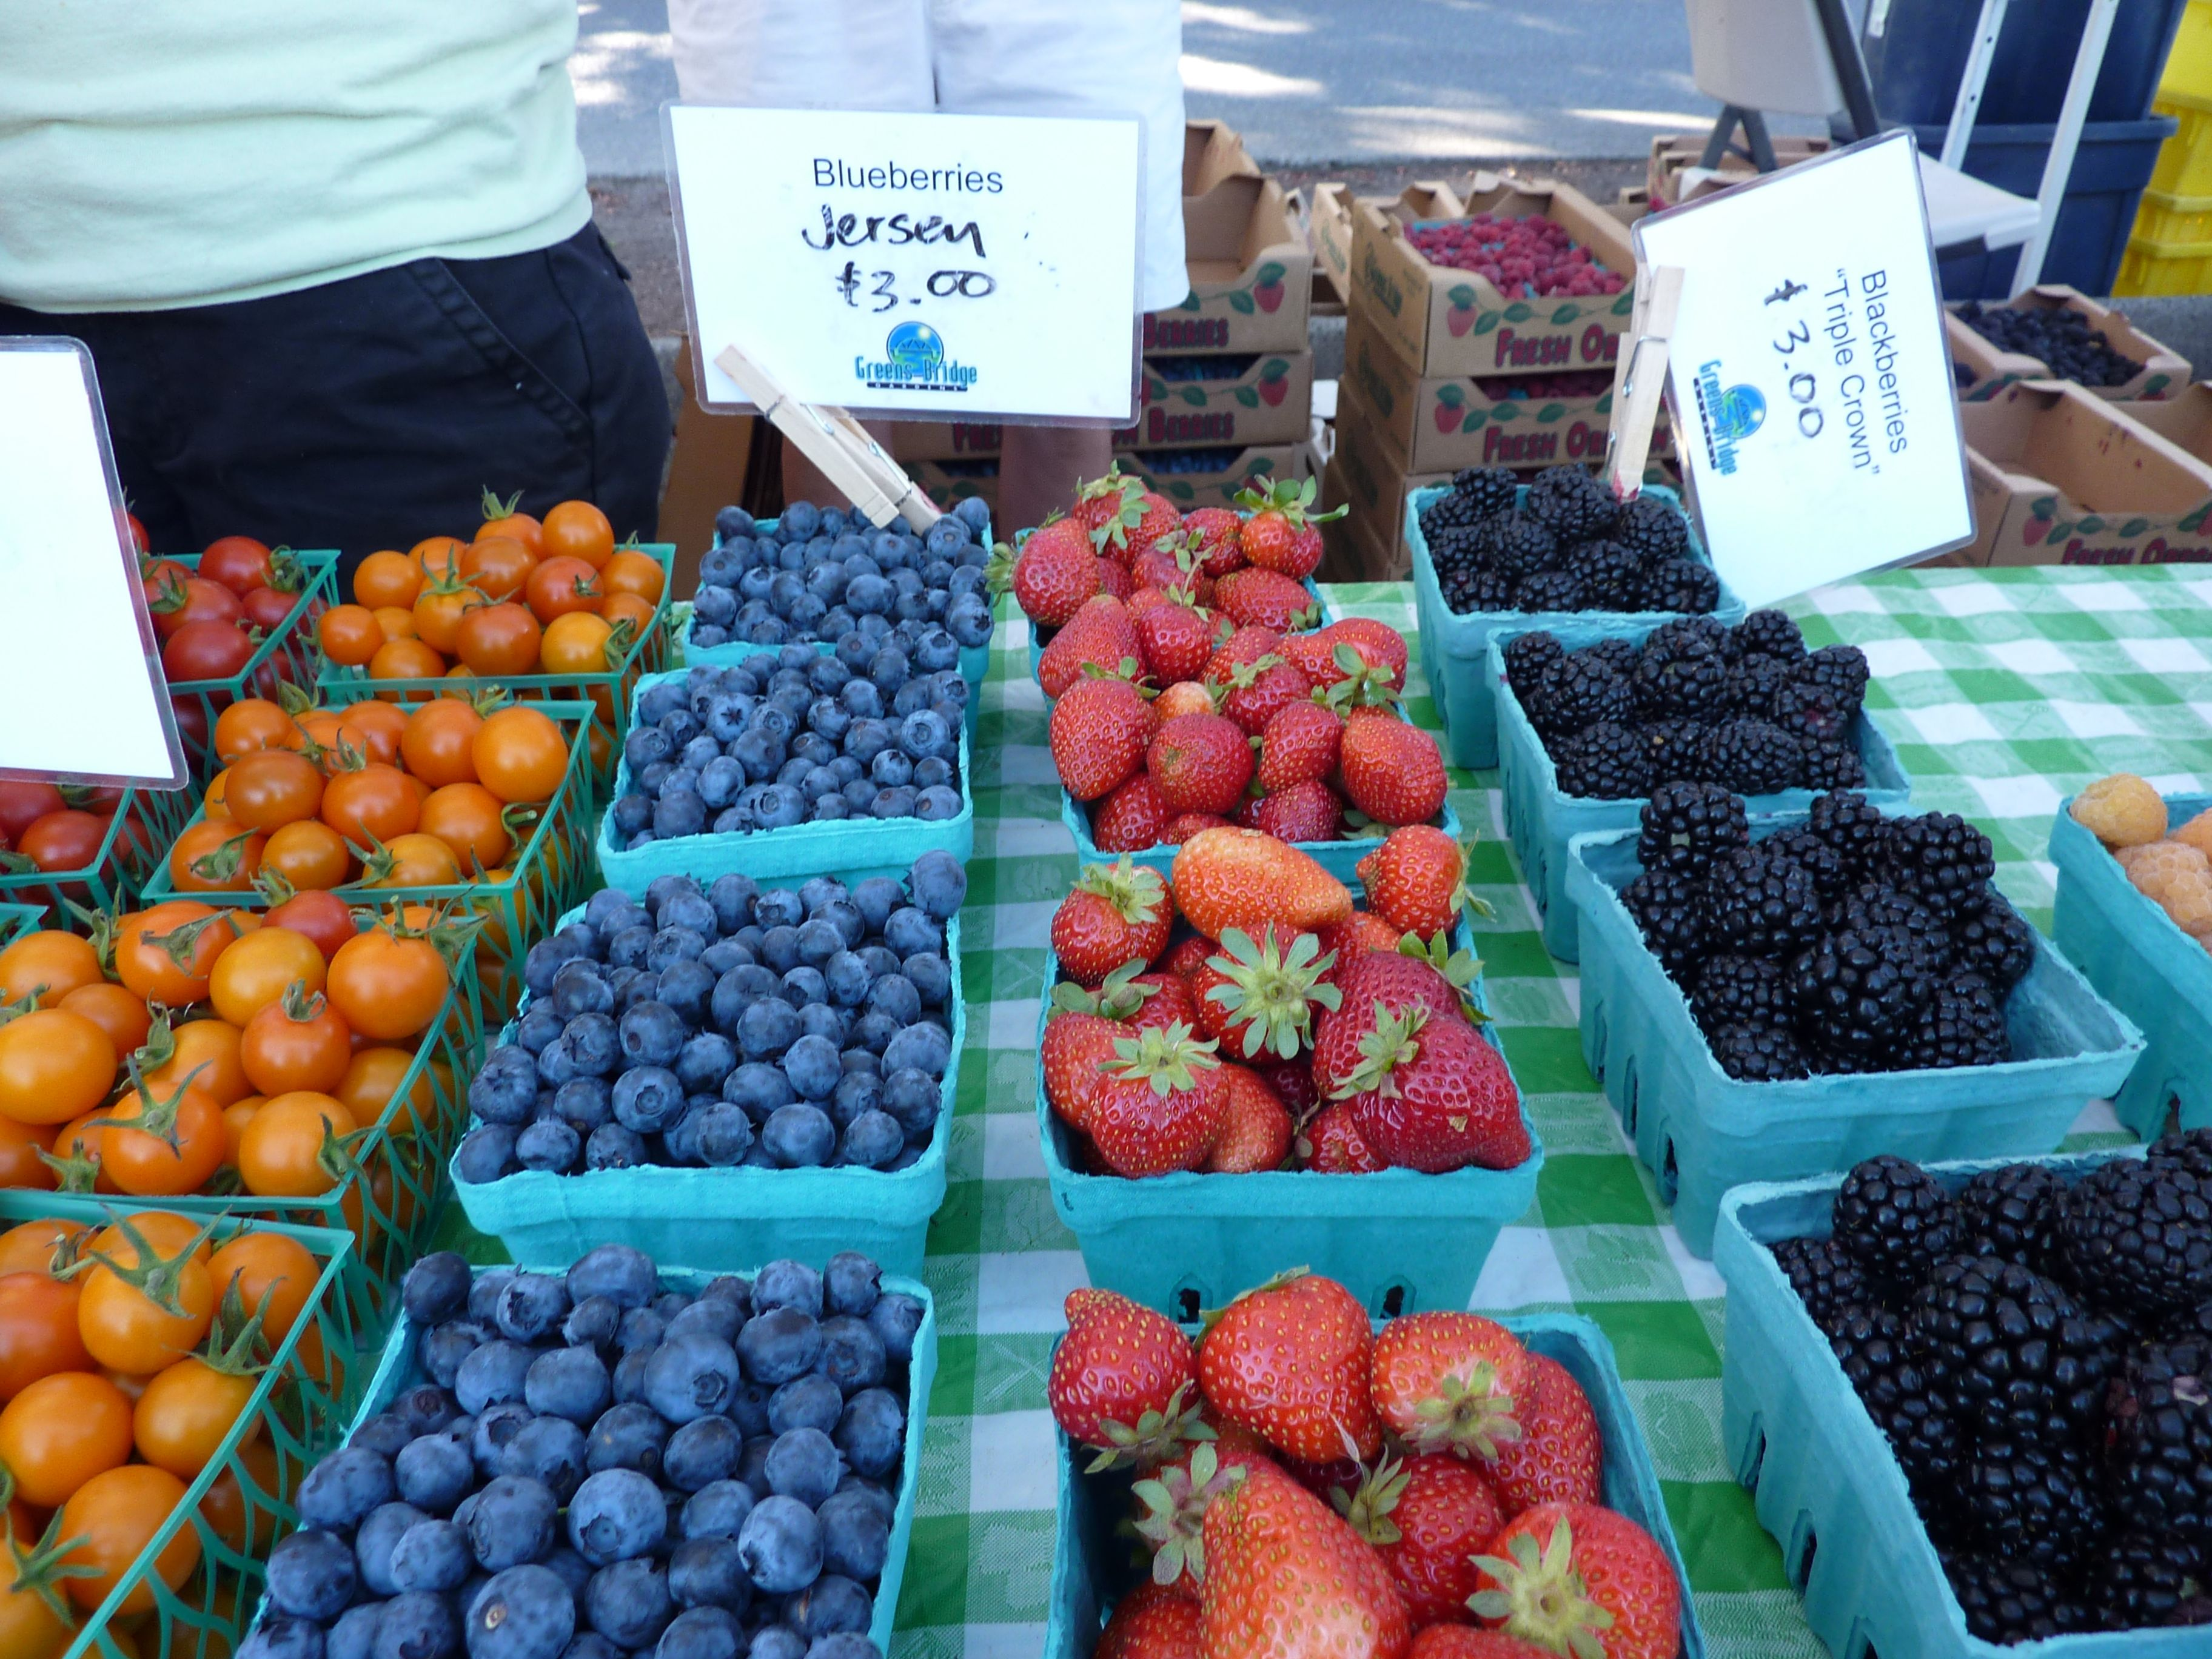 Farmers' Market Berries